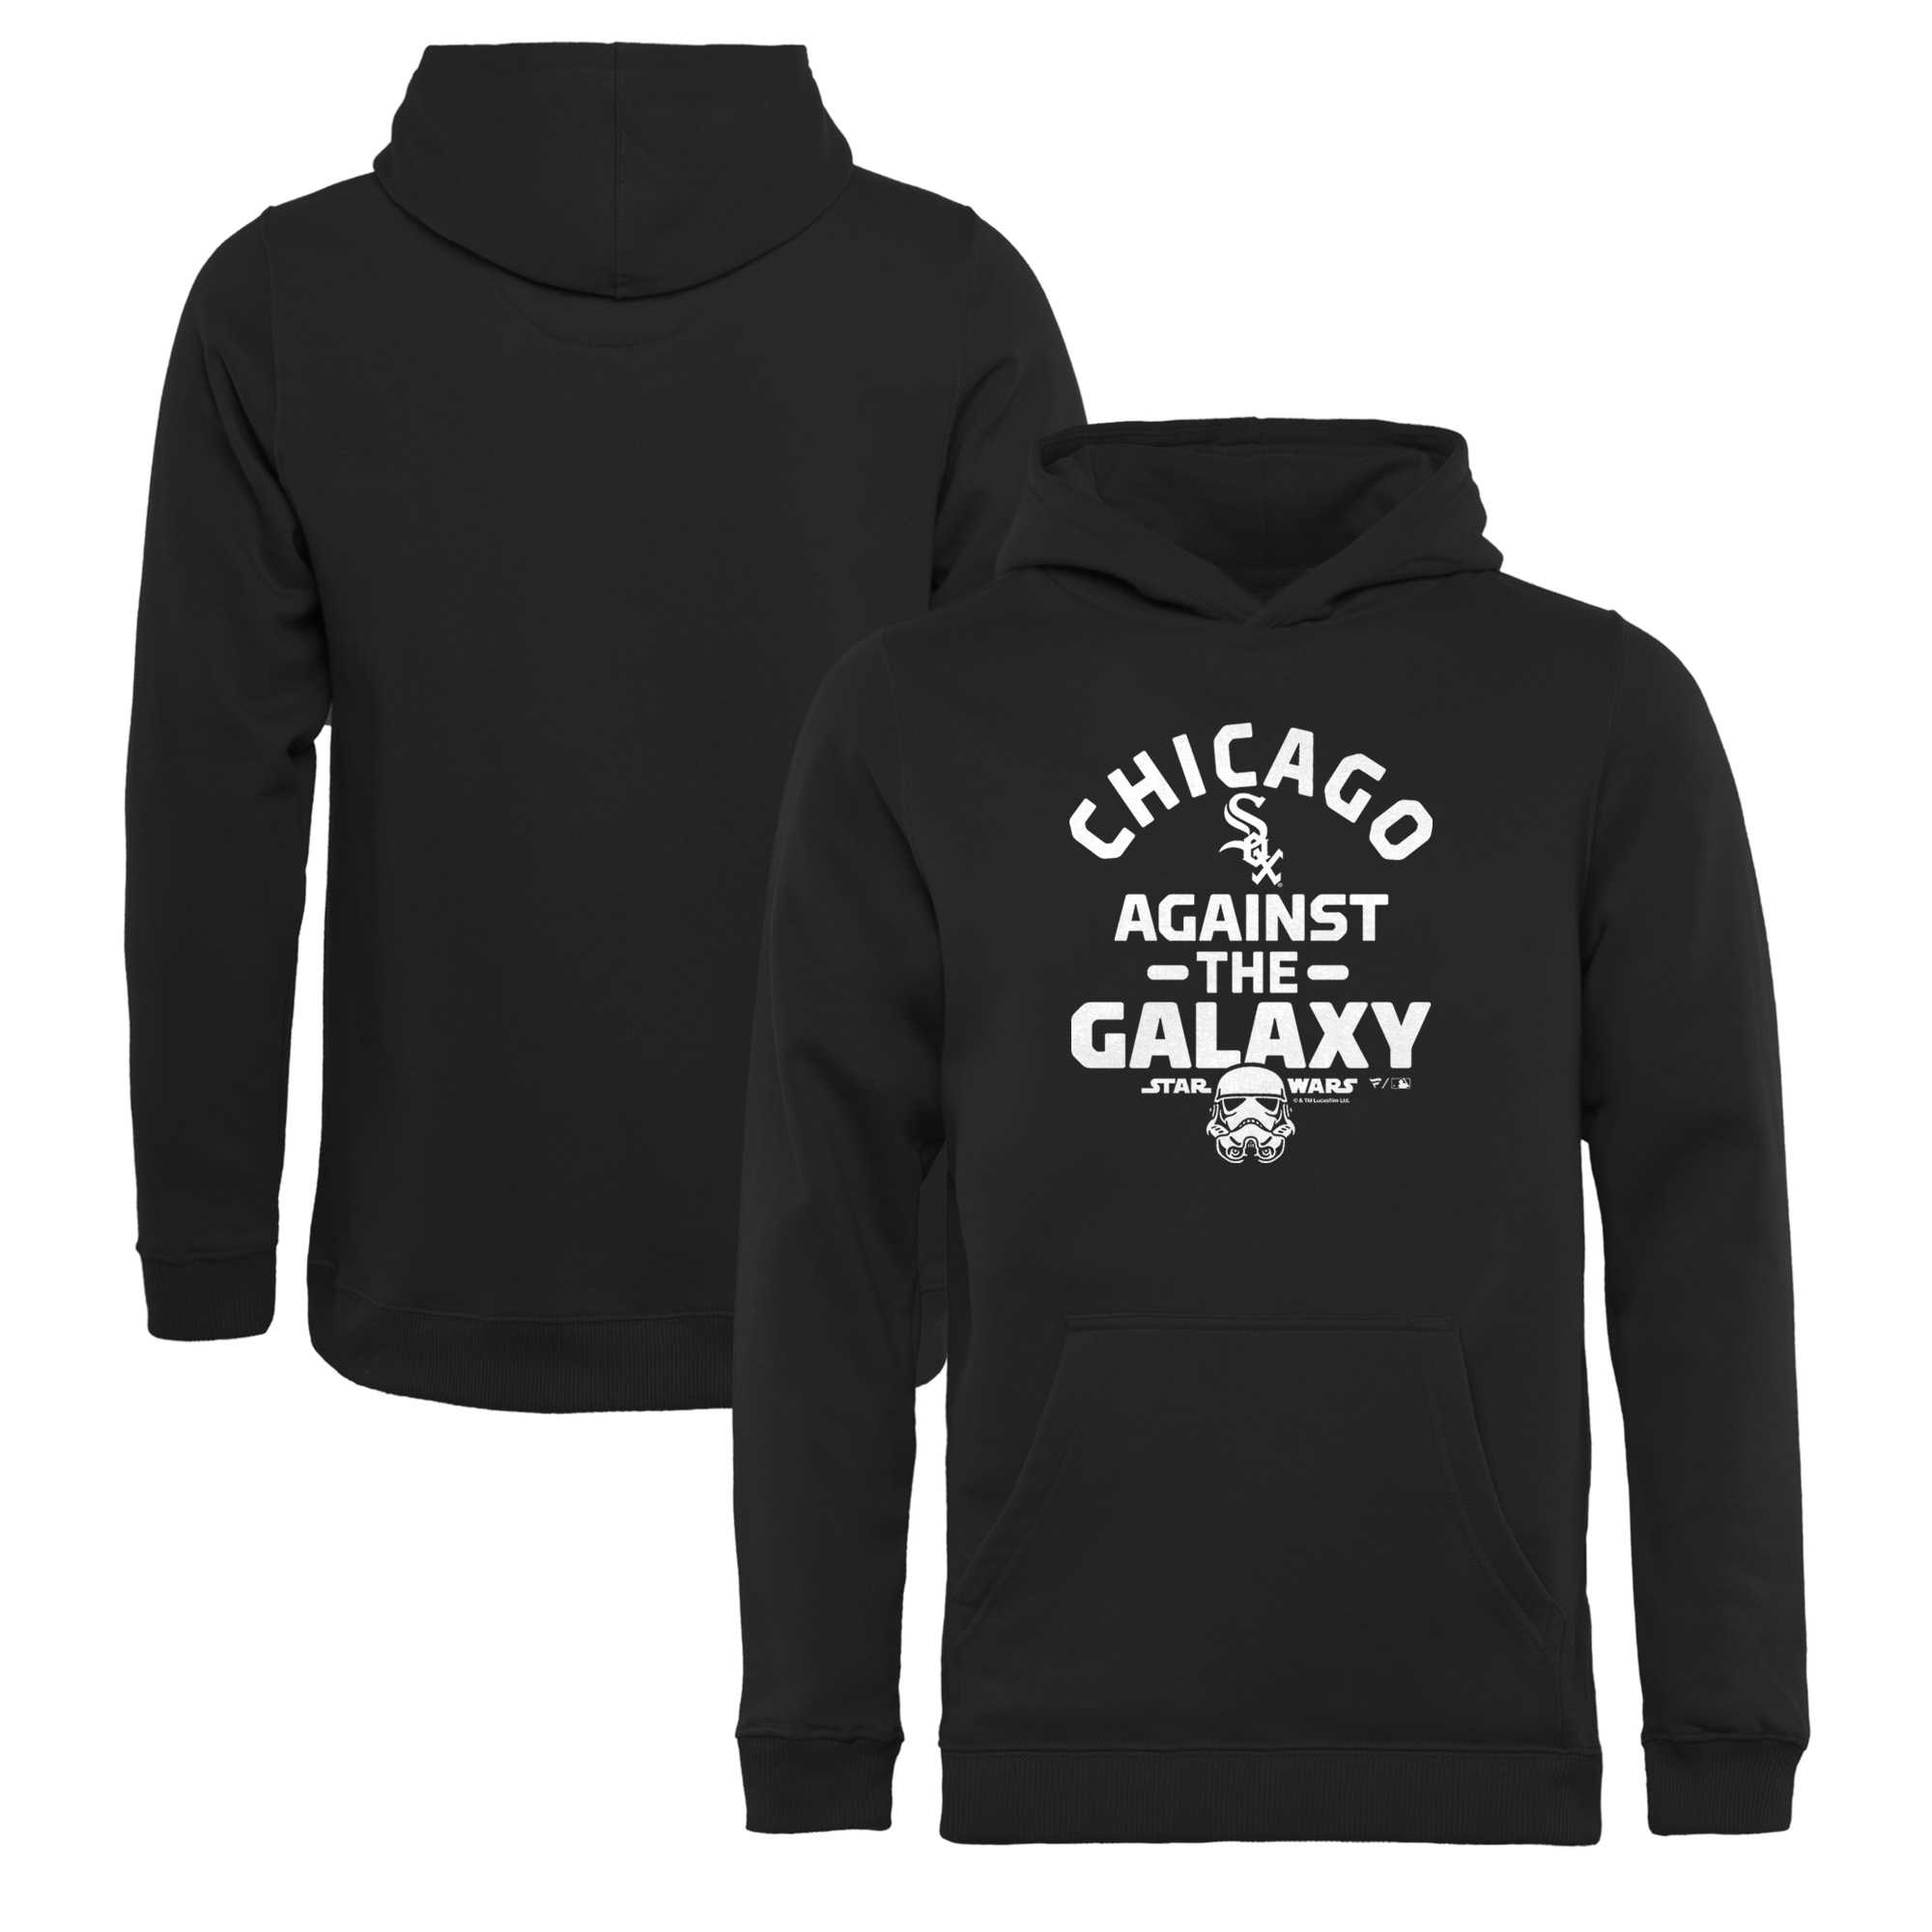 Chicago White Sox Fanatics Branded Youth MLB Star Wars Against The Galaxy Pullover Hoodie - Black